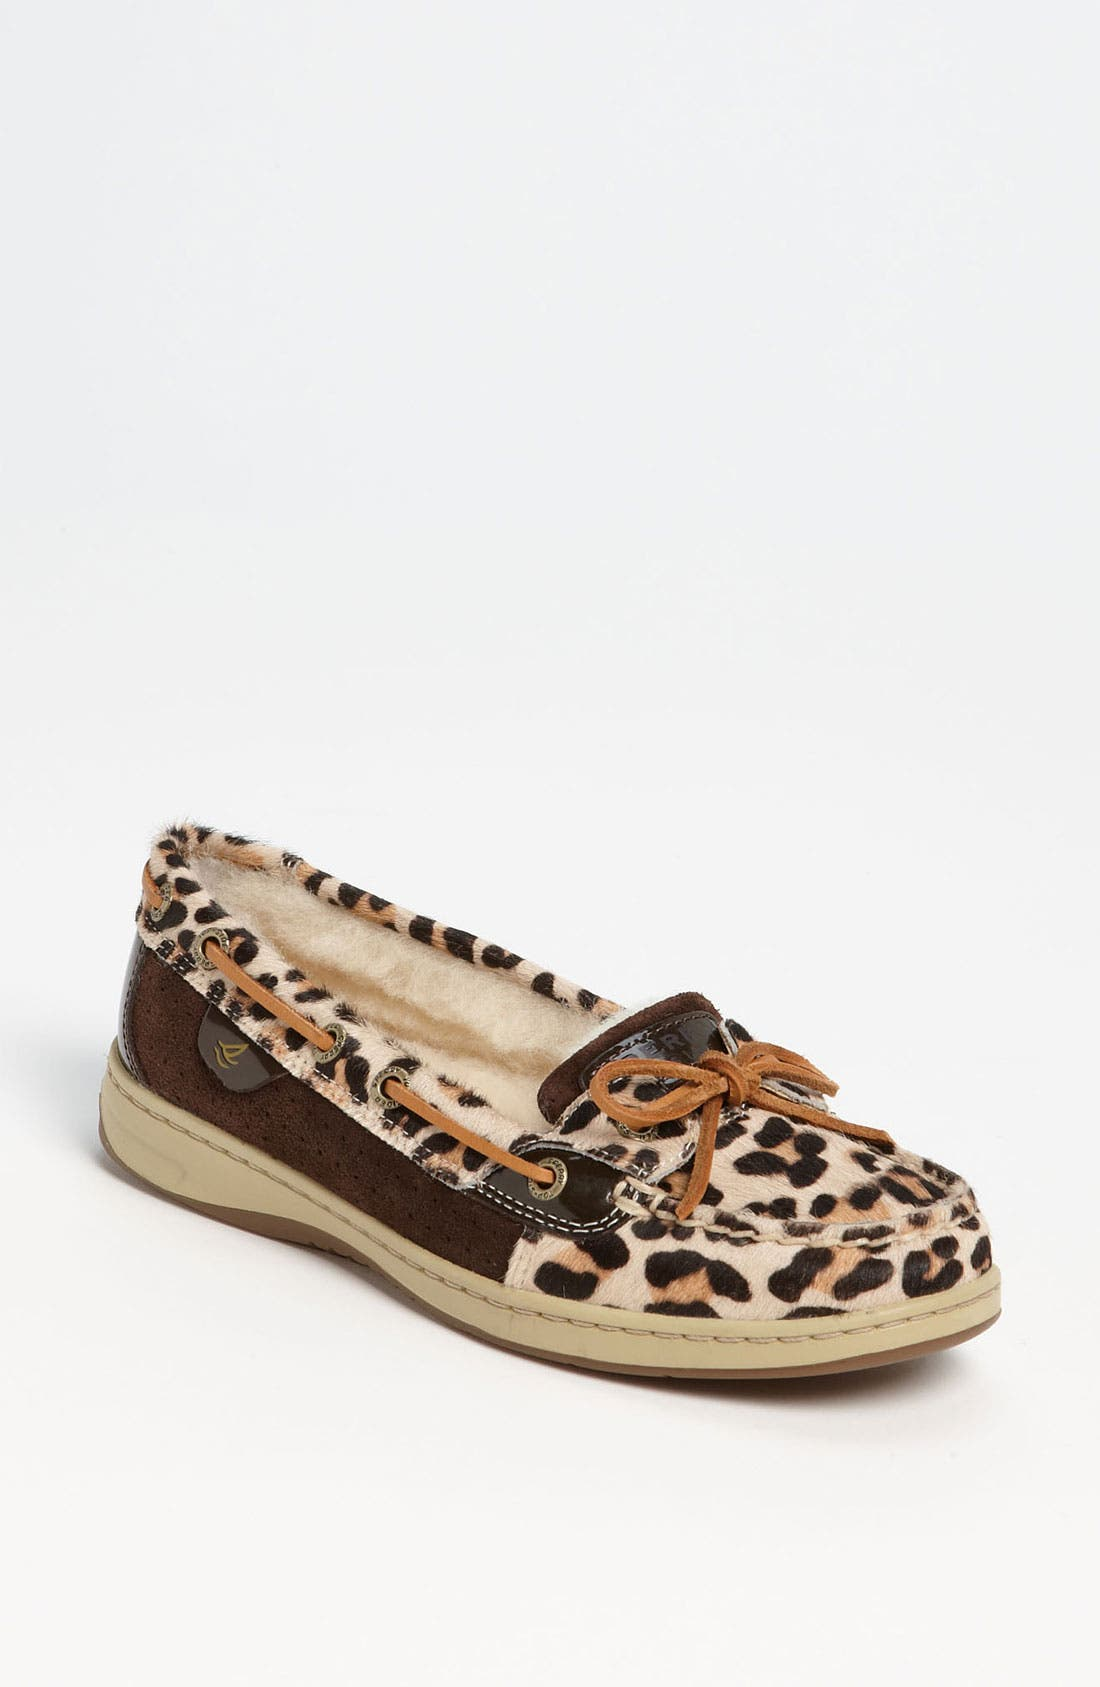 Alternate Image 1 Selected - Sperry Top-Sider® 'Angelfish' Sneaker (Online Only)